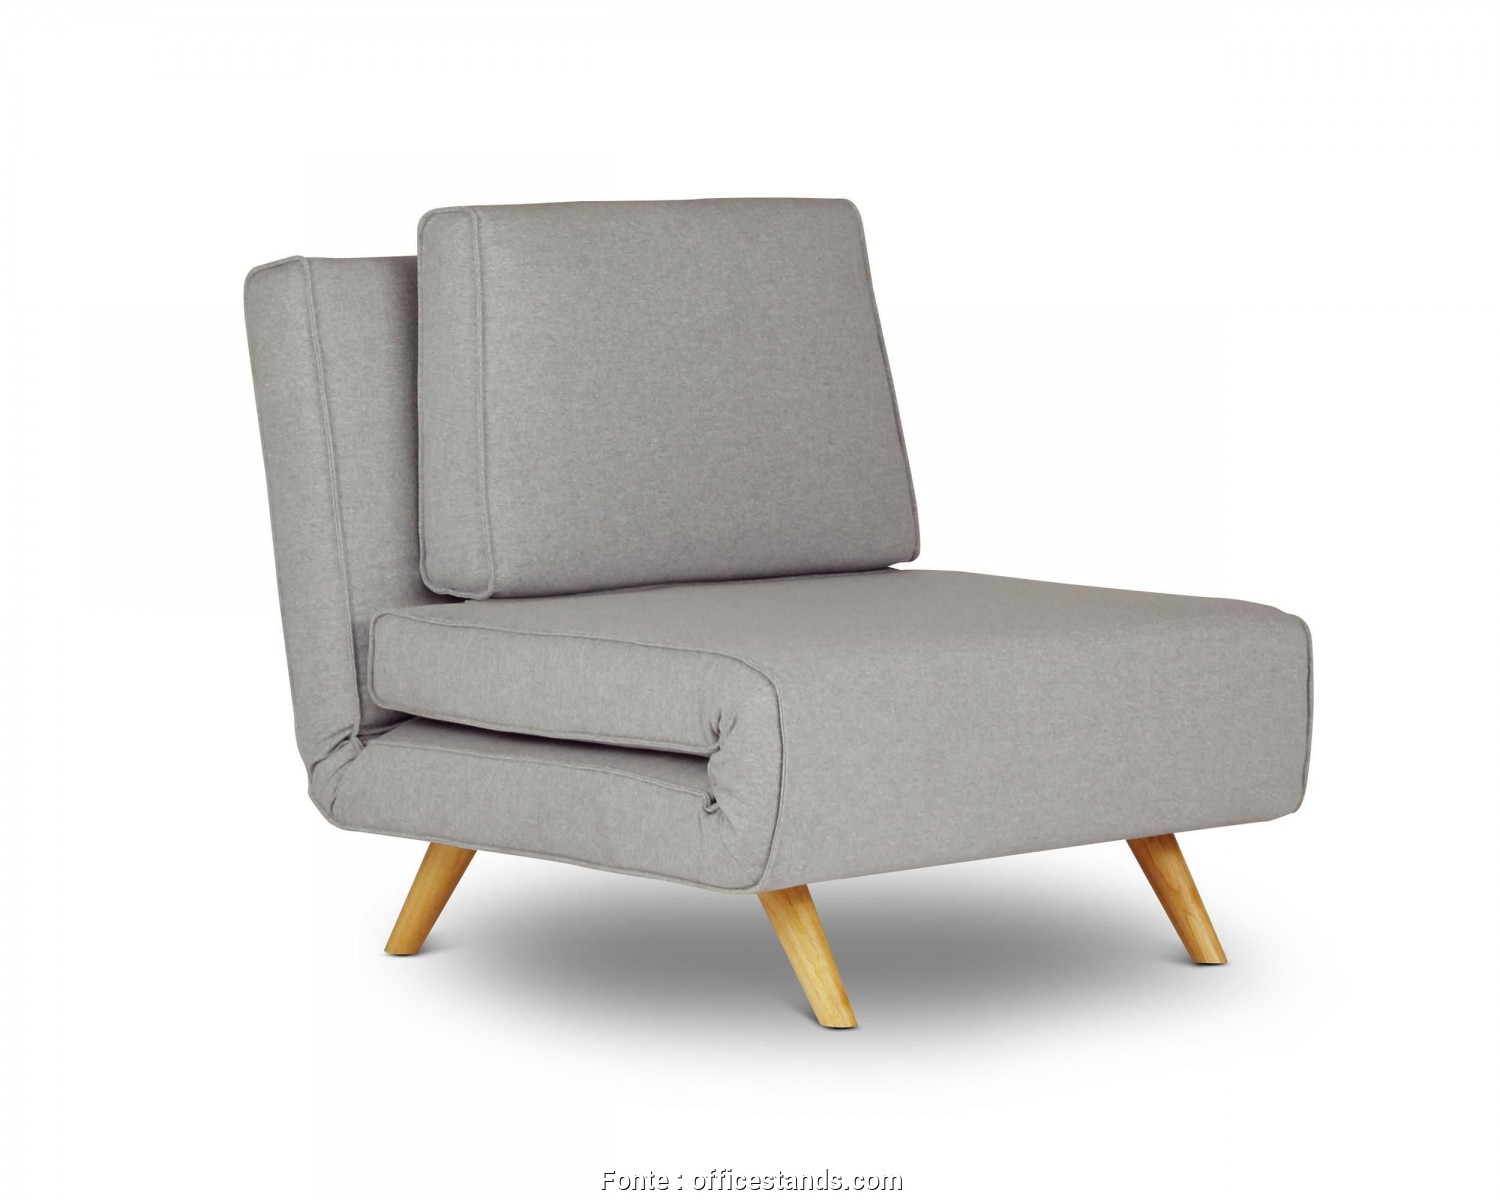 Ikea Couch Asarum, Esotico Ikea Sofa, Single Best Chair Beds To, Or Sleep In